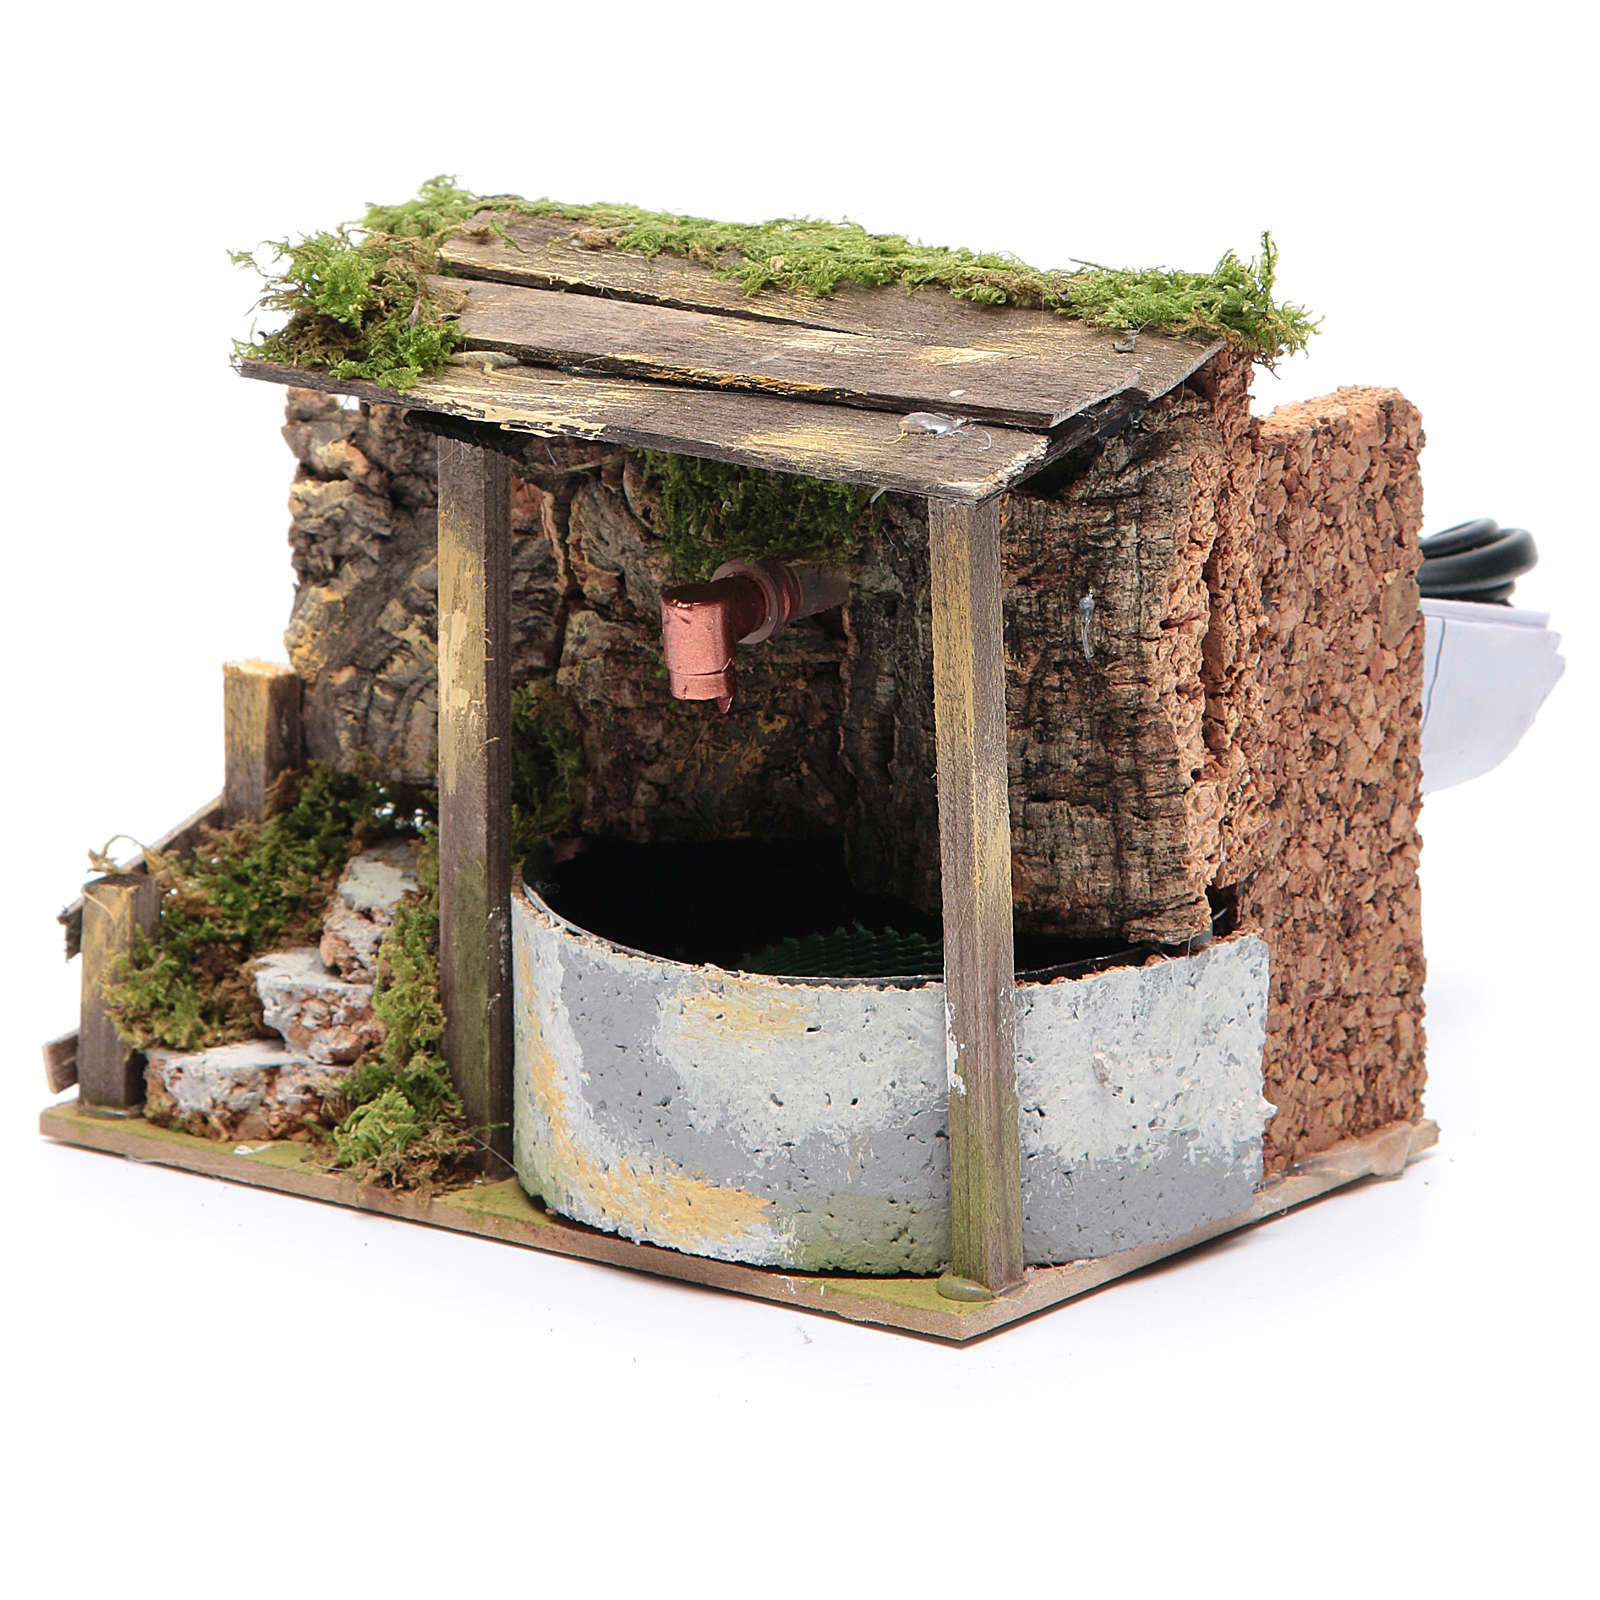 Electric fountain in rocky environment for nativity scene sized 10x15x10 cm 4